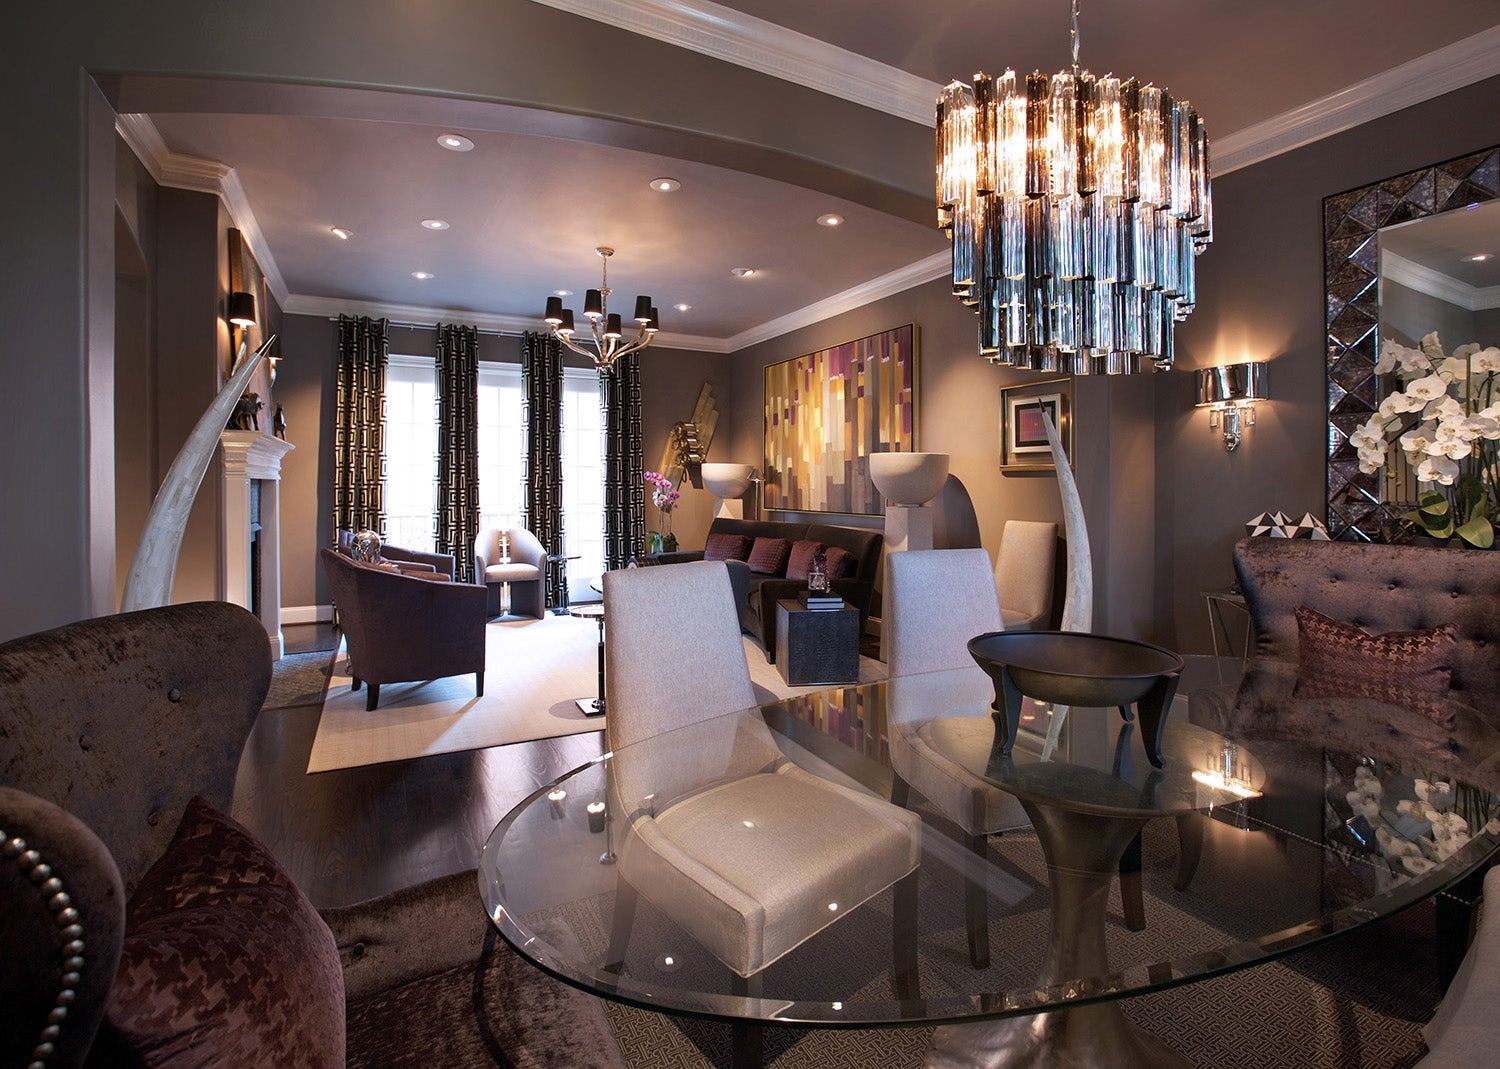 curato home houston tx 77006 1stdibs more about curato home